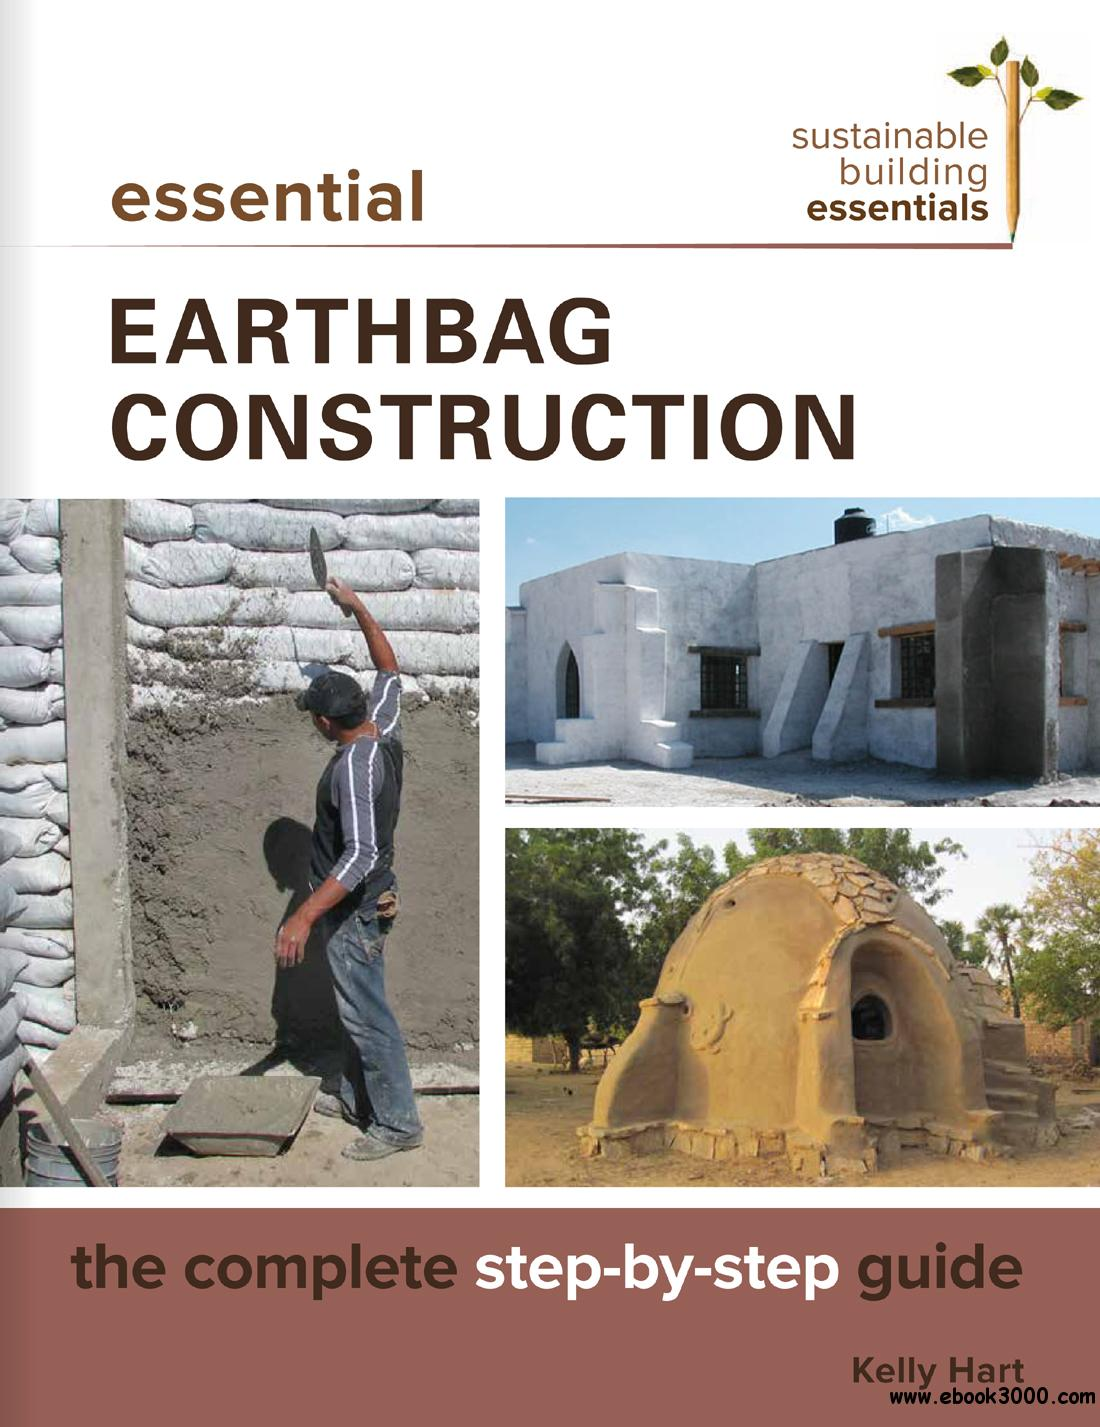 Essential Earthbag Construction: The Complete Step-by-Step Guide (Sustainable Building Essentials Series)